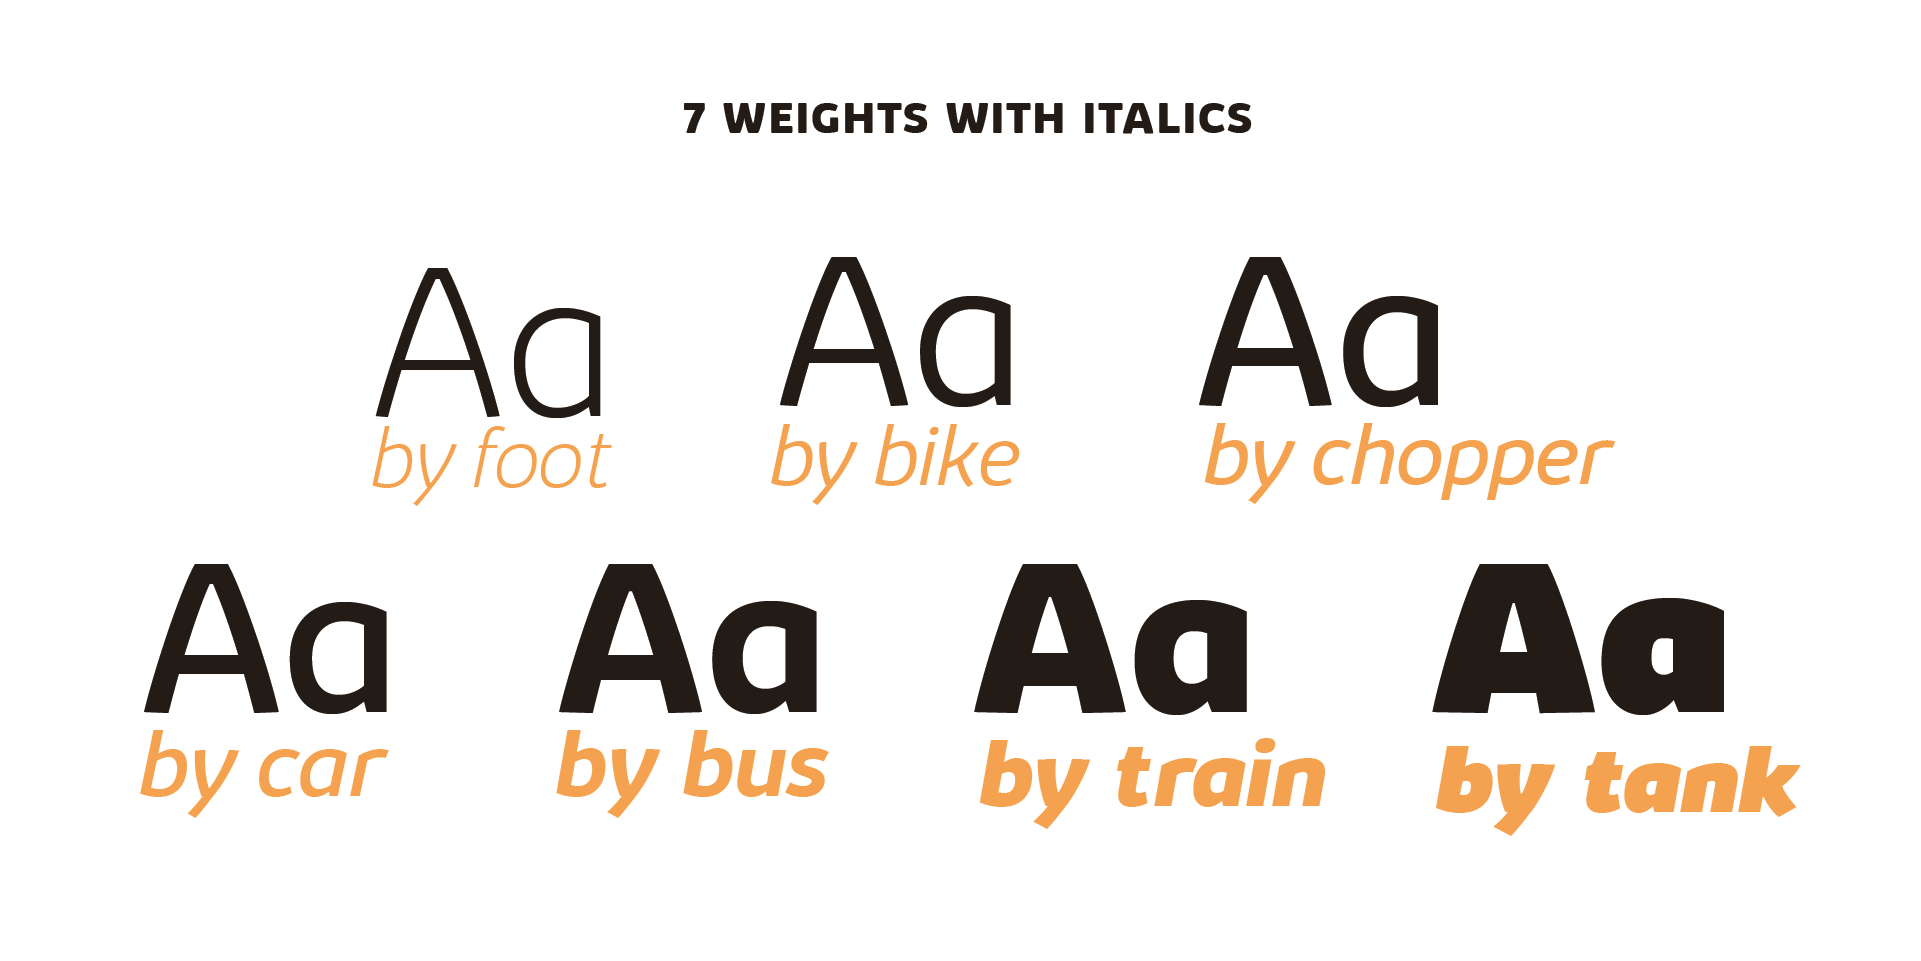 7 weights with italics